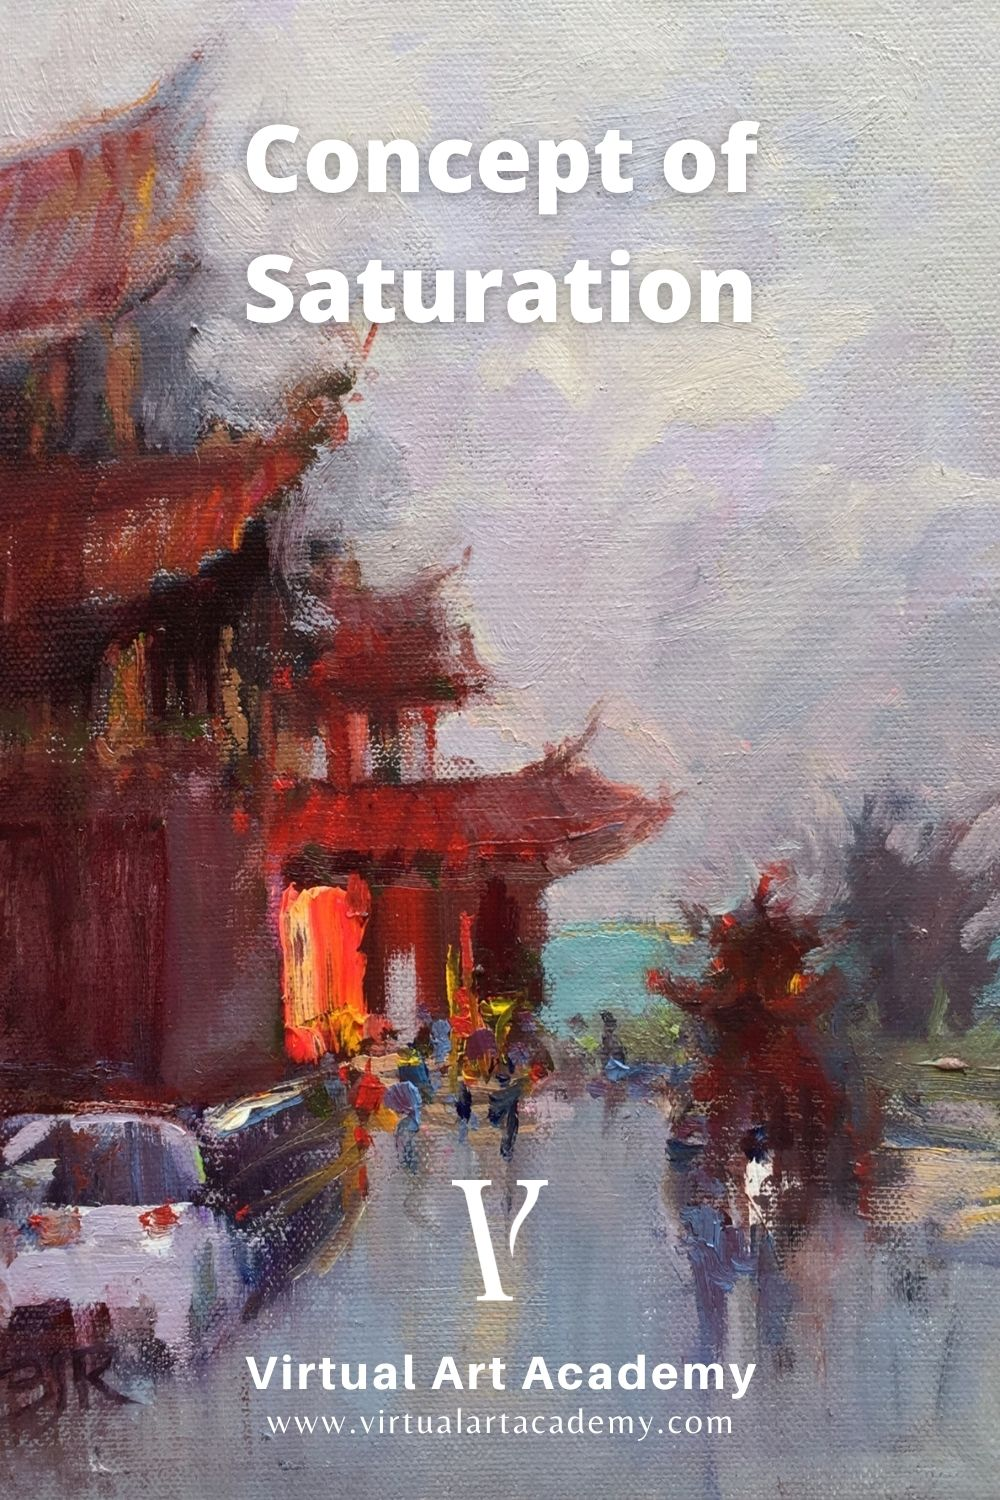 Painting for Beginners: What Is Saturation In Art, And Why Is It Important To Understand It?